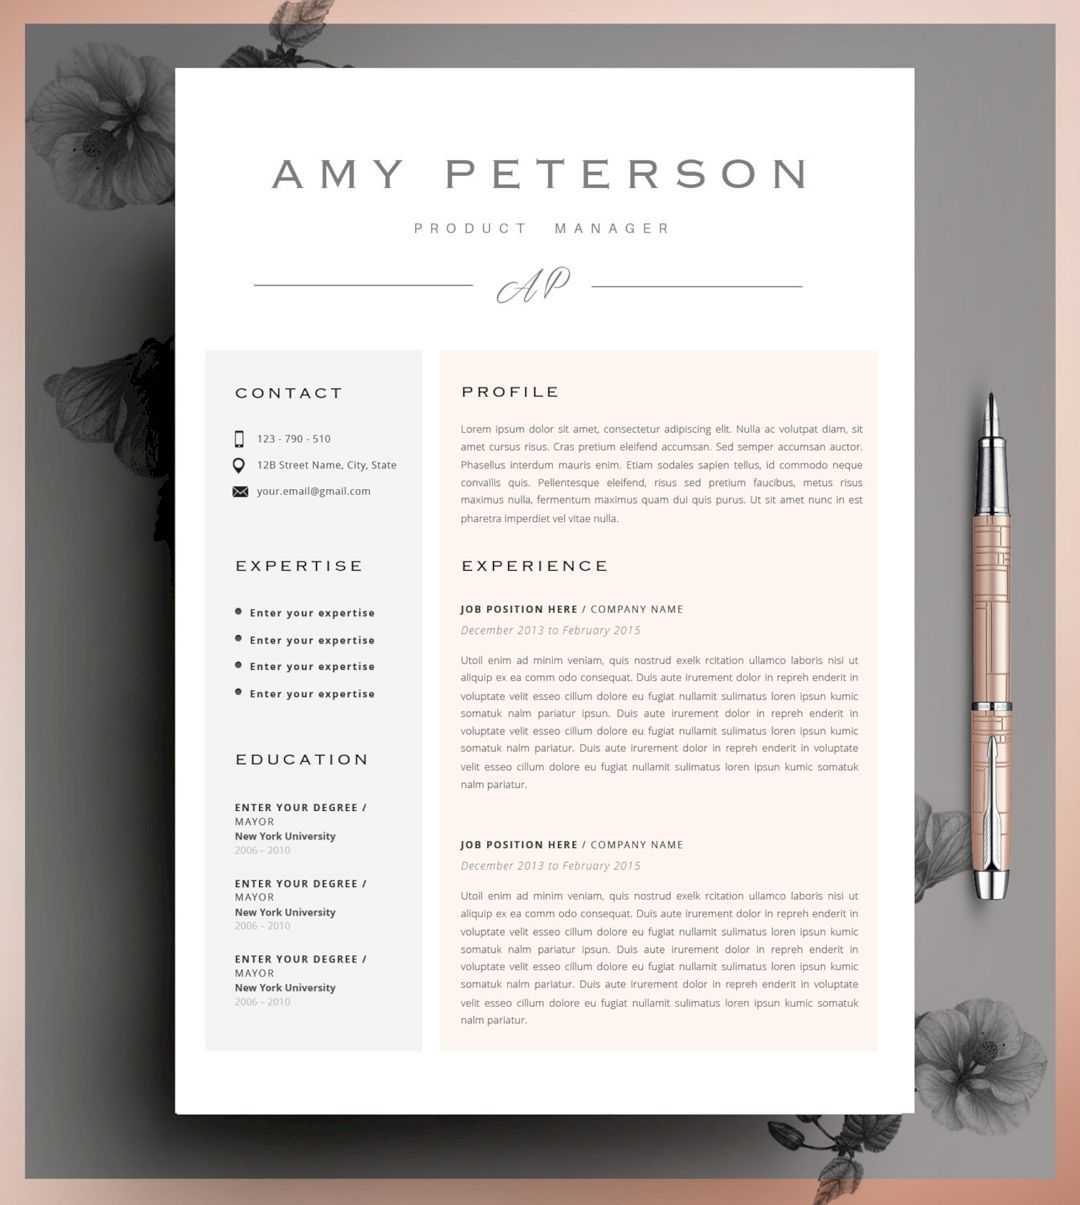 Cool Resume Templates 61 Cool Resume Design Ideas  Resume Ideas